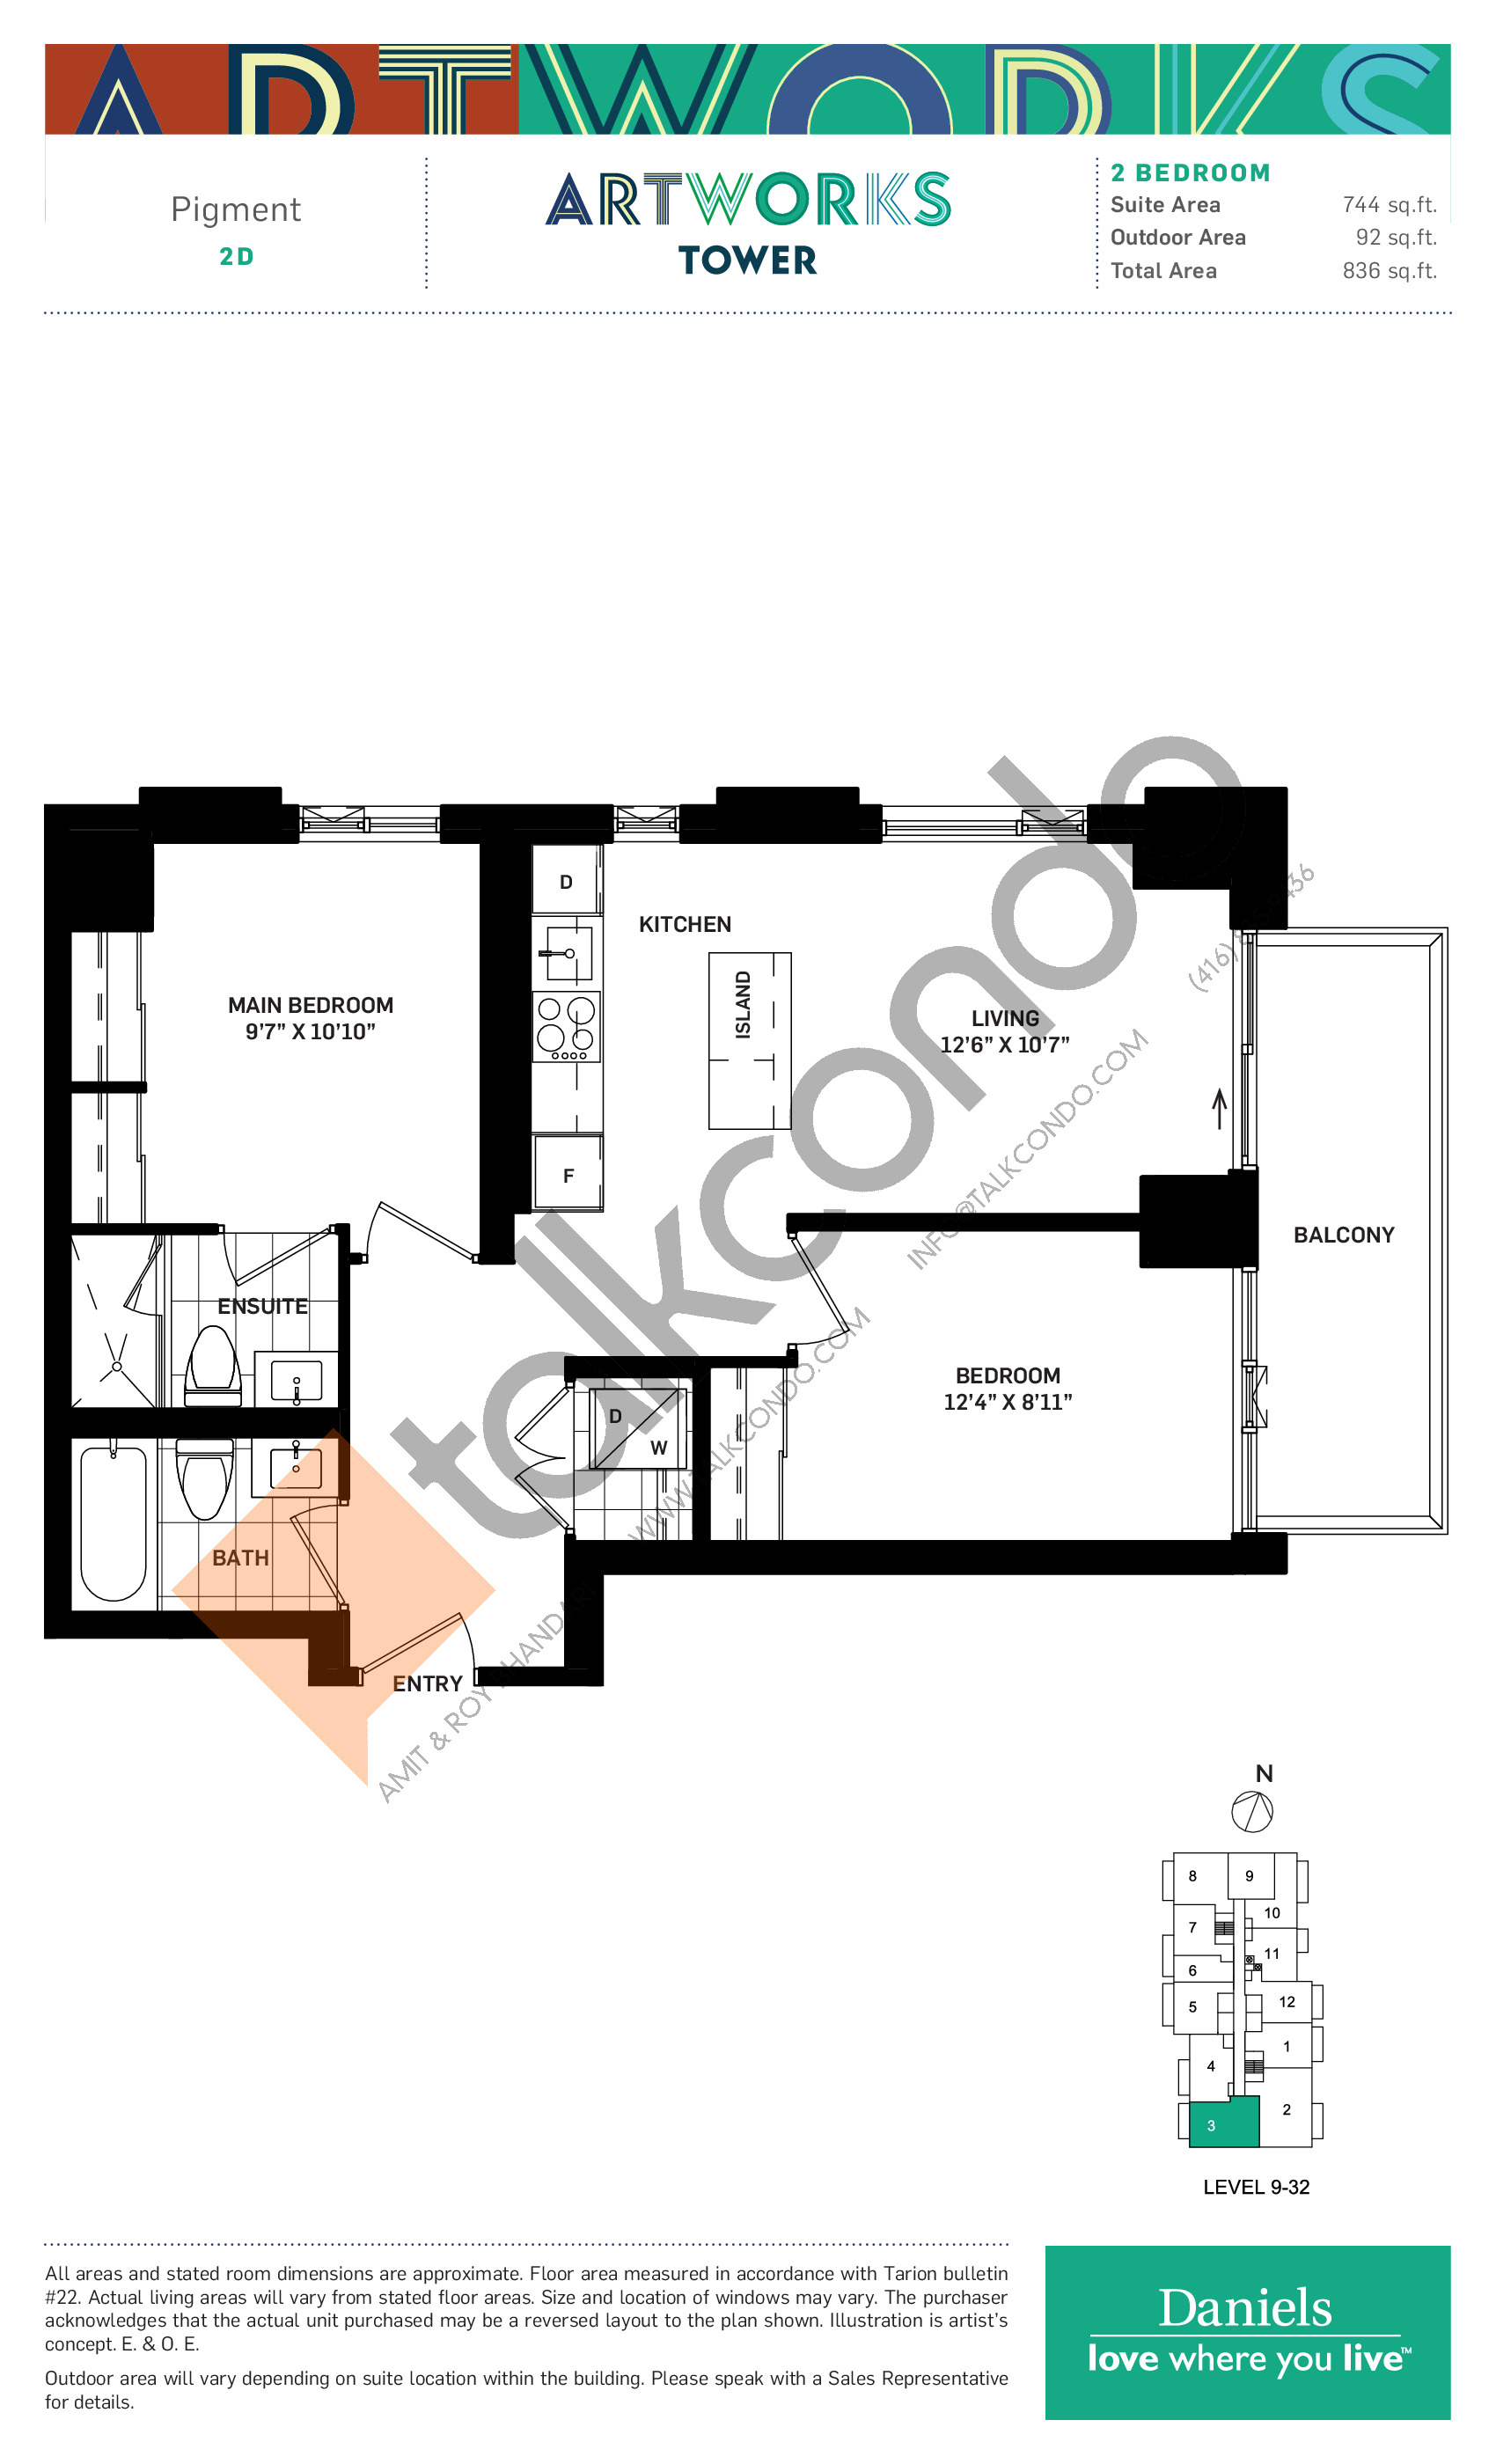 Pigment Floor Plan at Artworks Tower Condos - 744 sq.ft